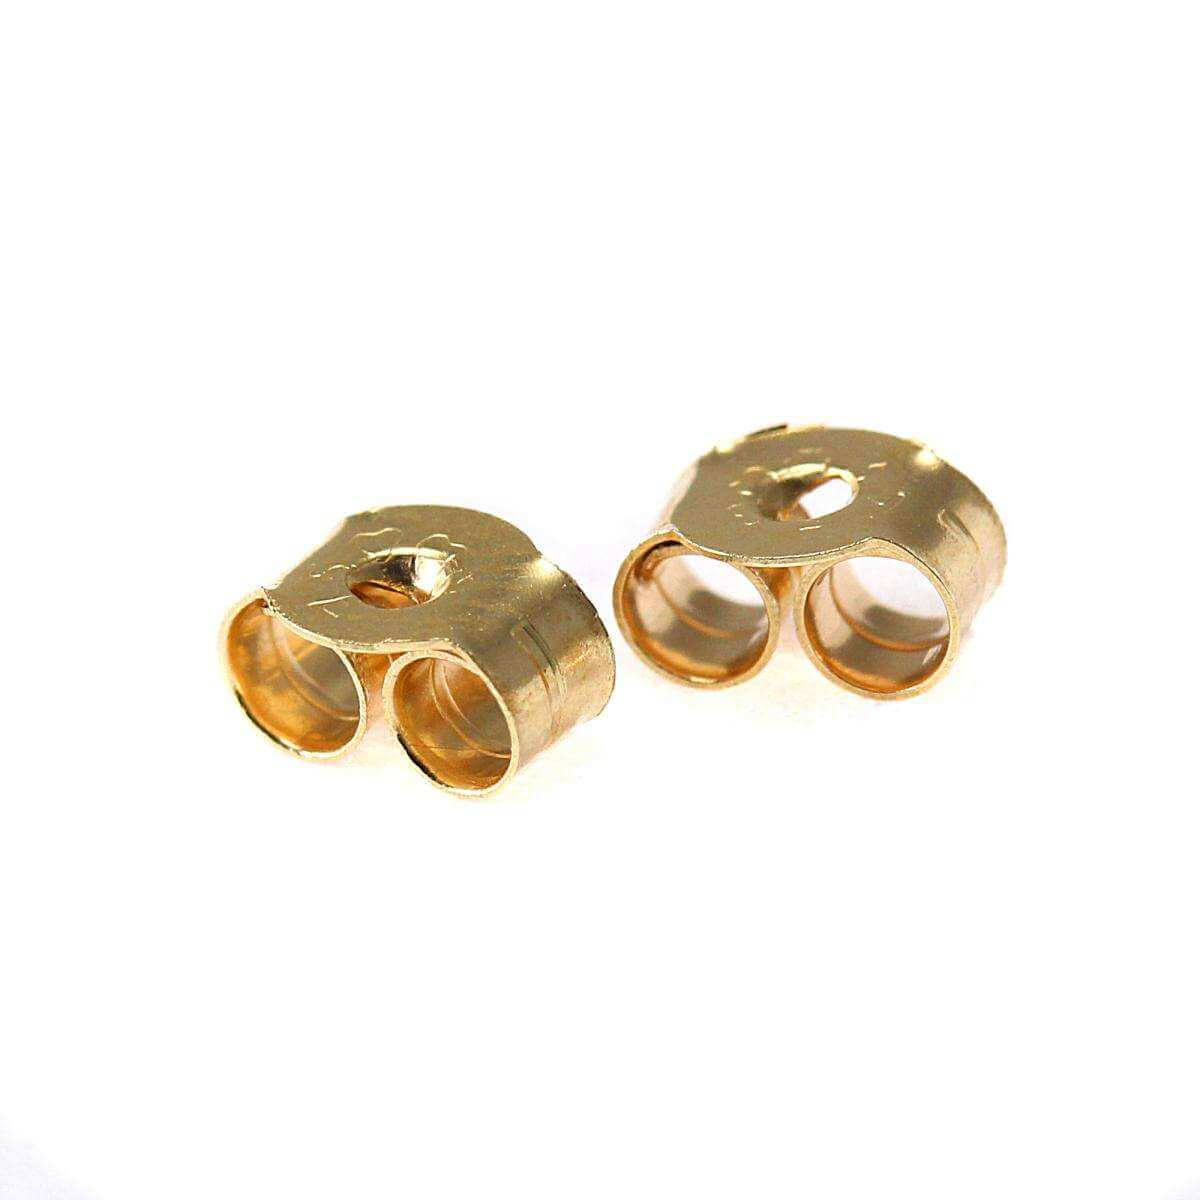 9ct Gold Butterfly Backs Scrolls for Stud Earrings 5mm